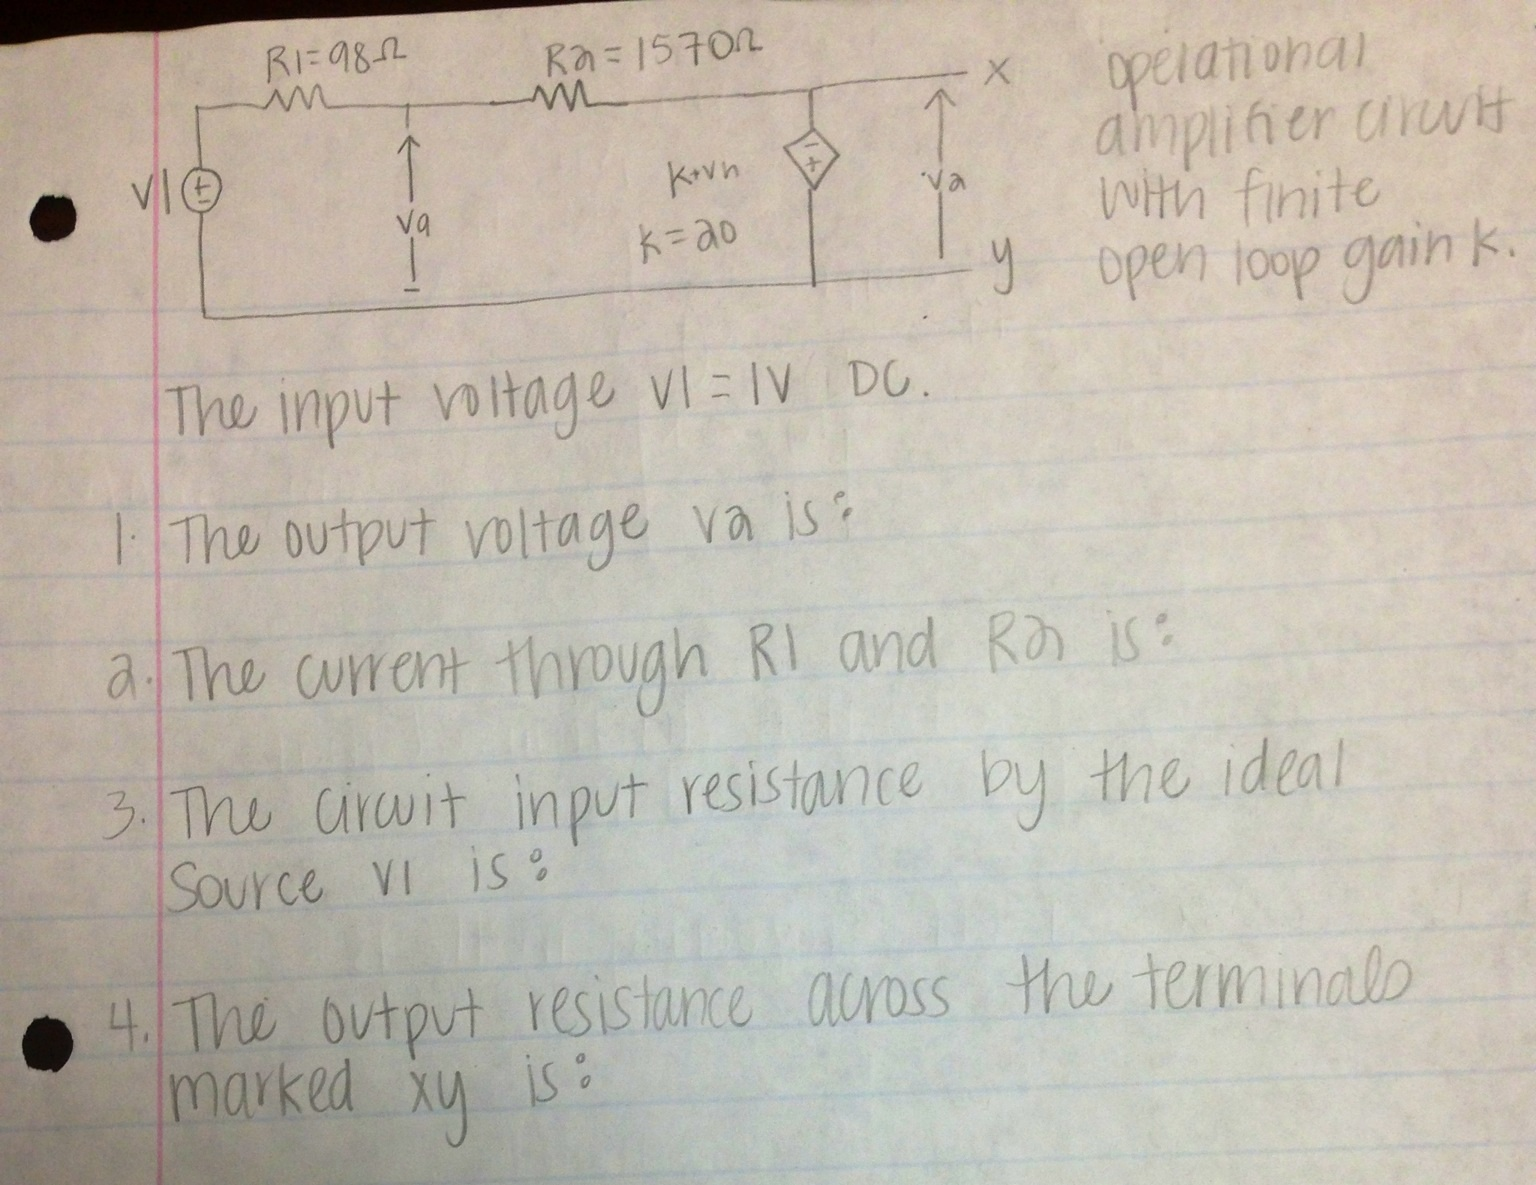 The input voltage V1 = 1V DC. The output voltage